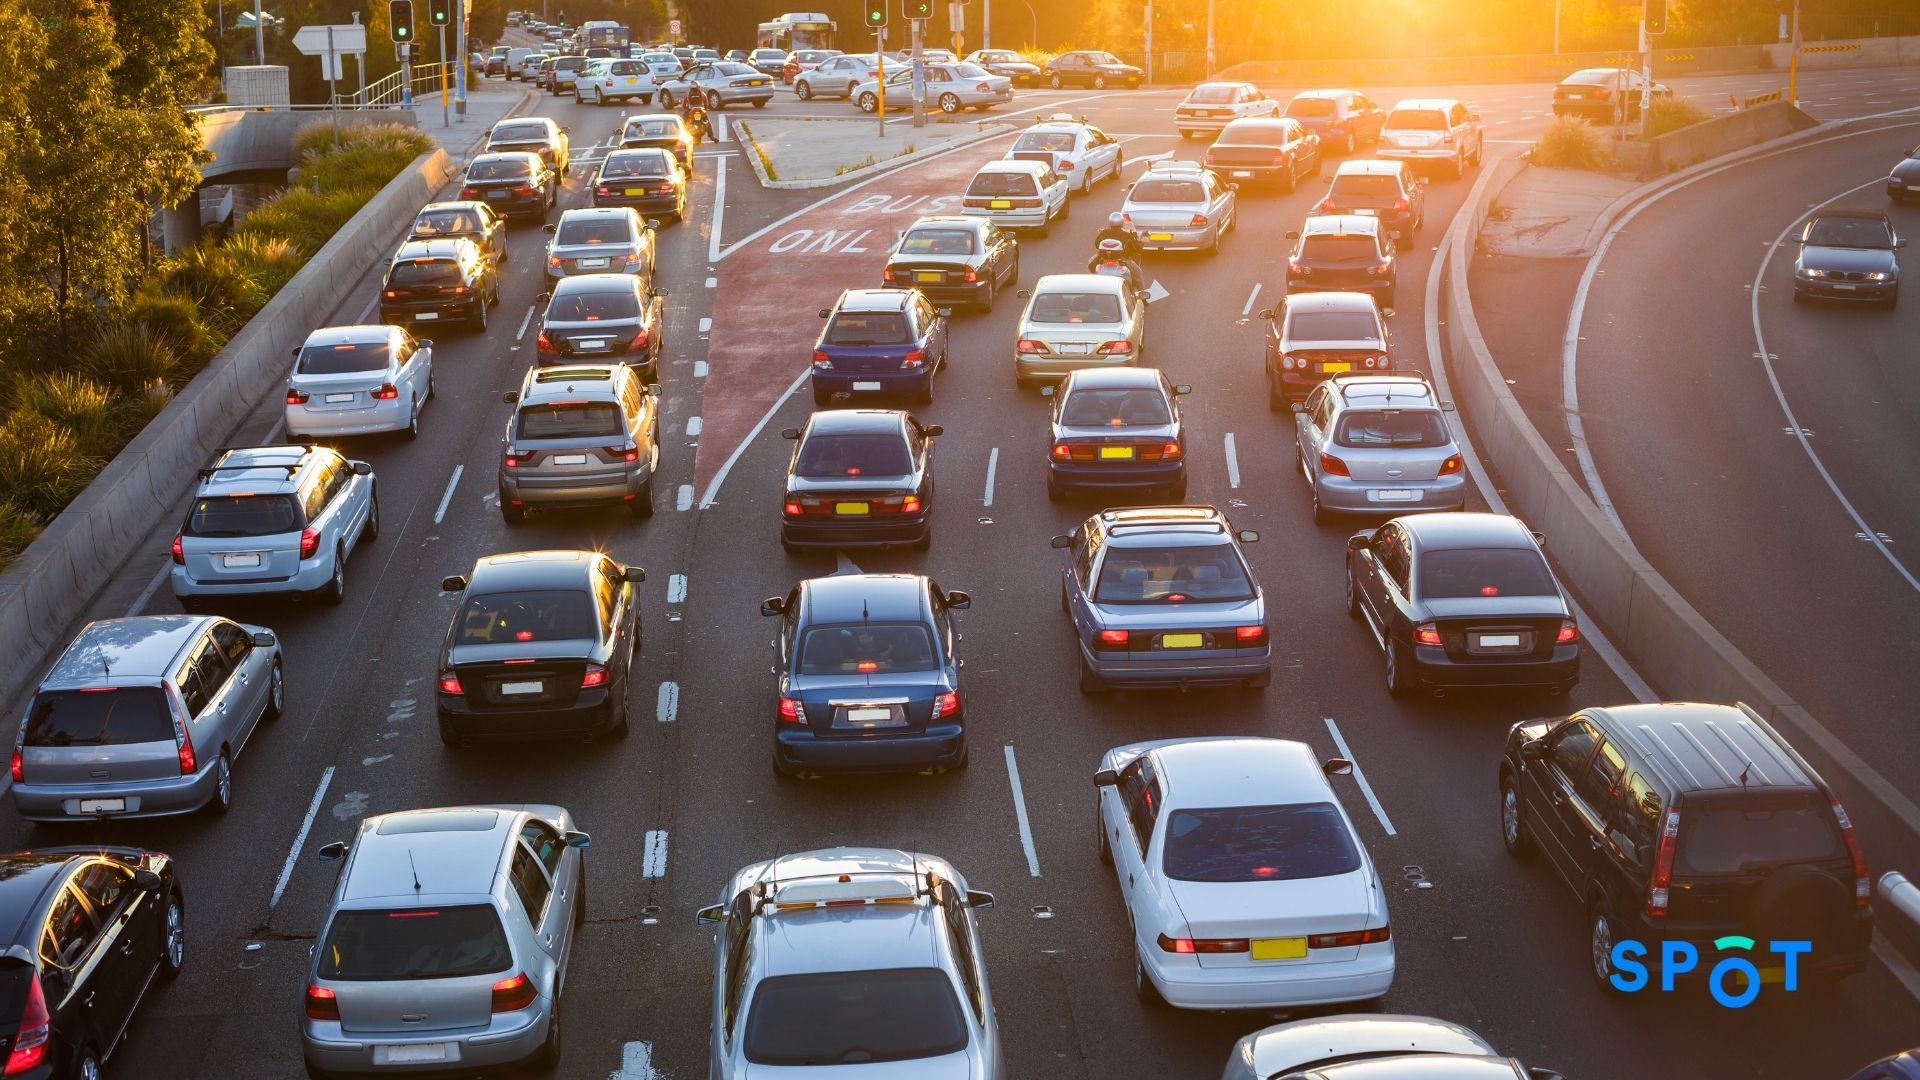 Traffic congestion can be avoided through the use of curbside data